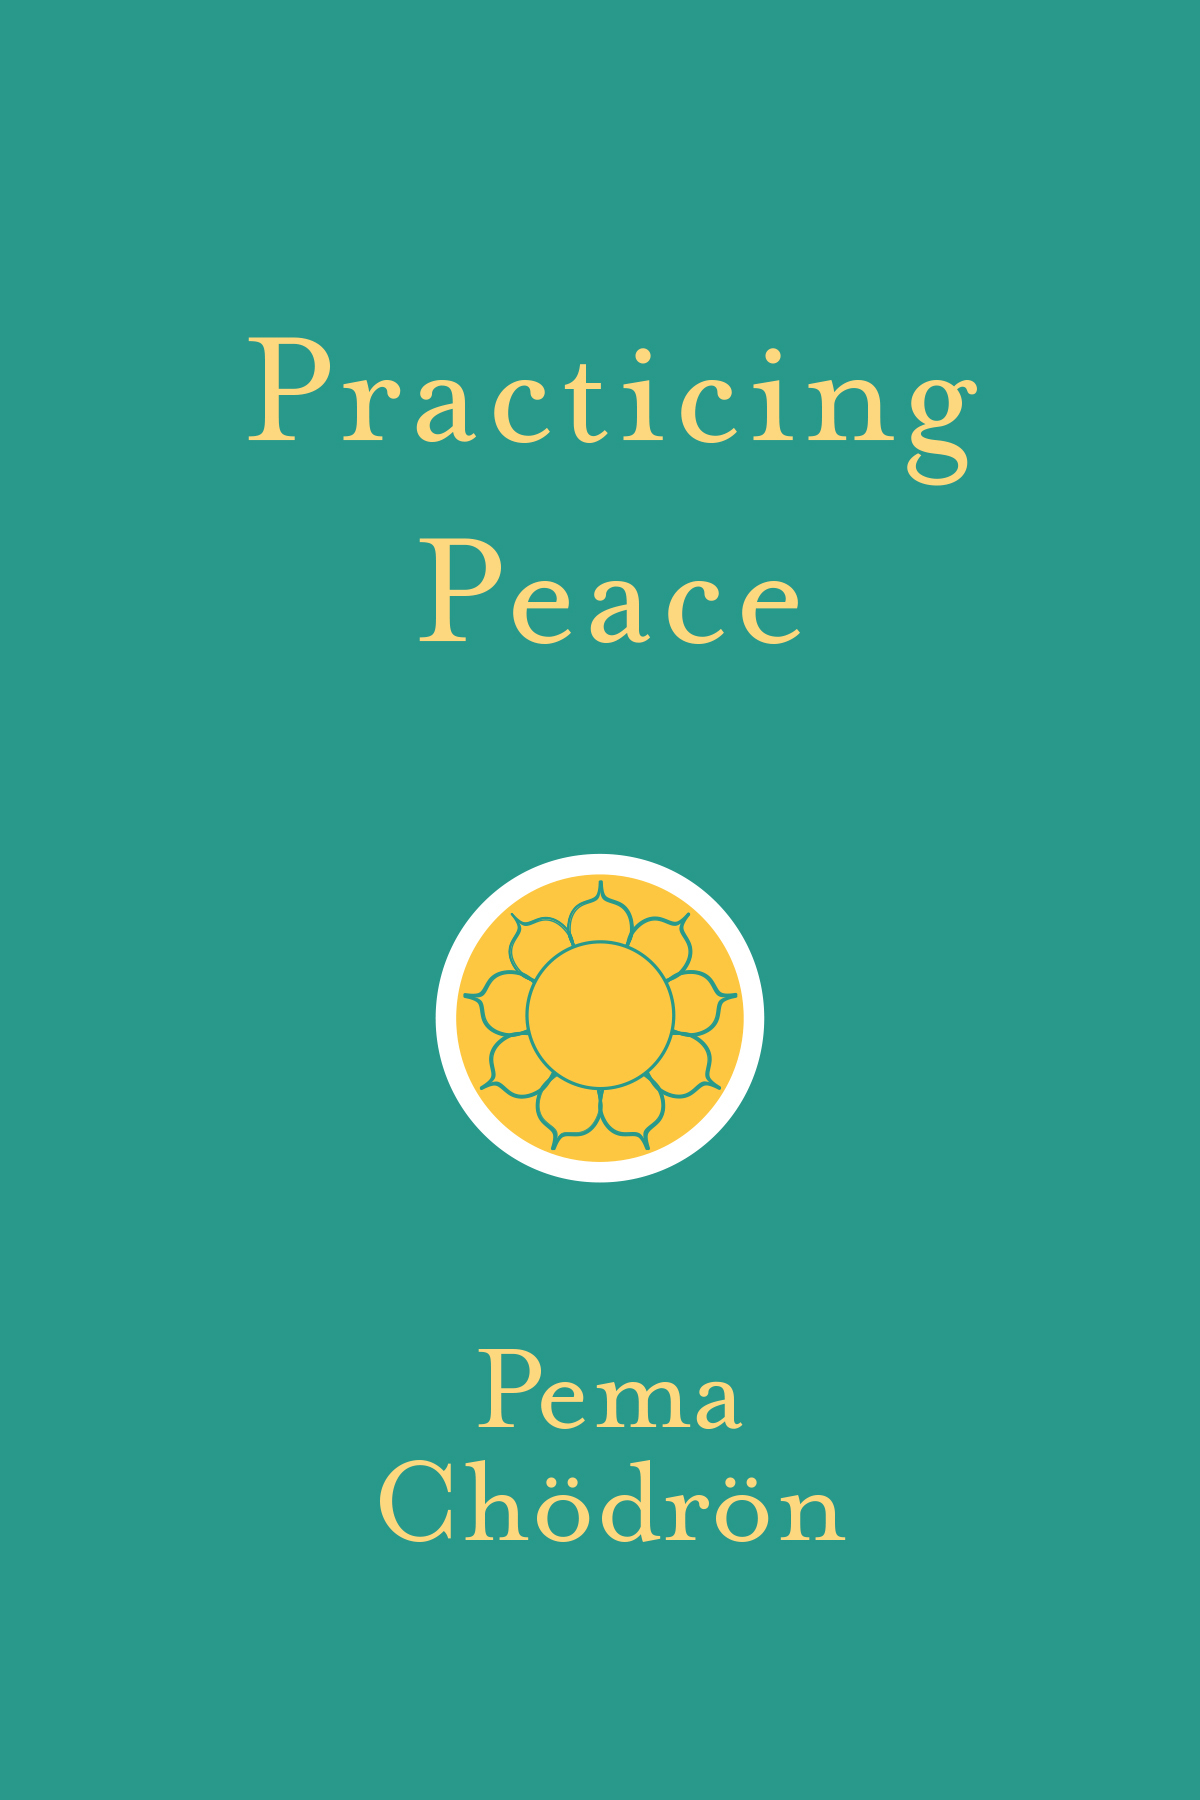 Practicing peace book cover